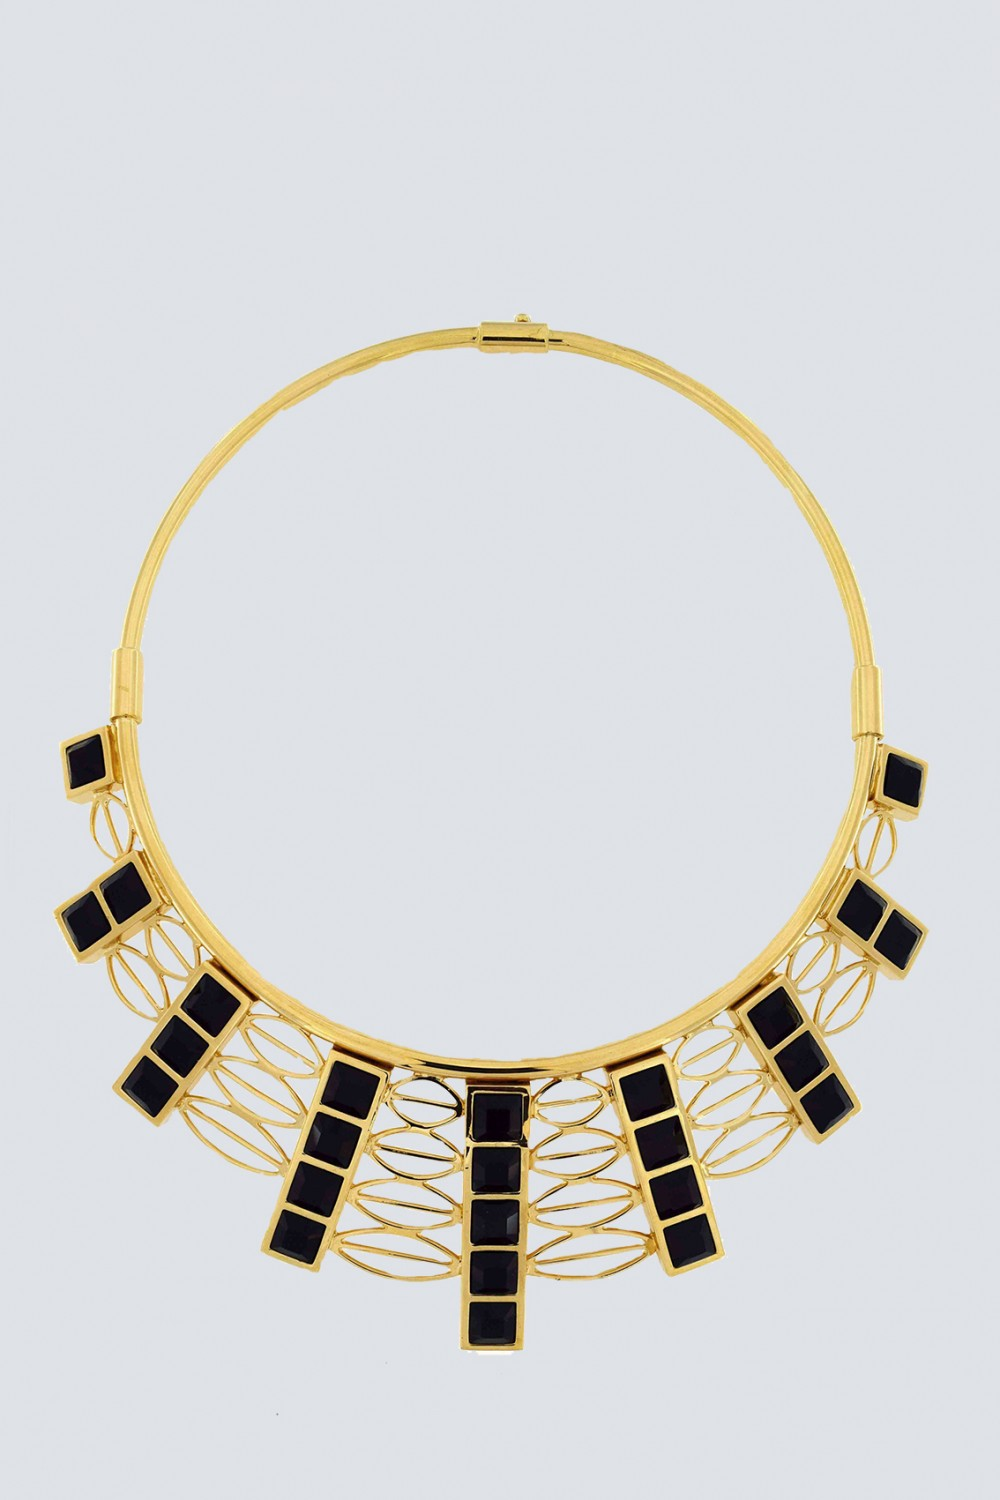 Necklace with gold and black Swarovski